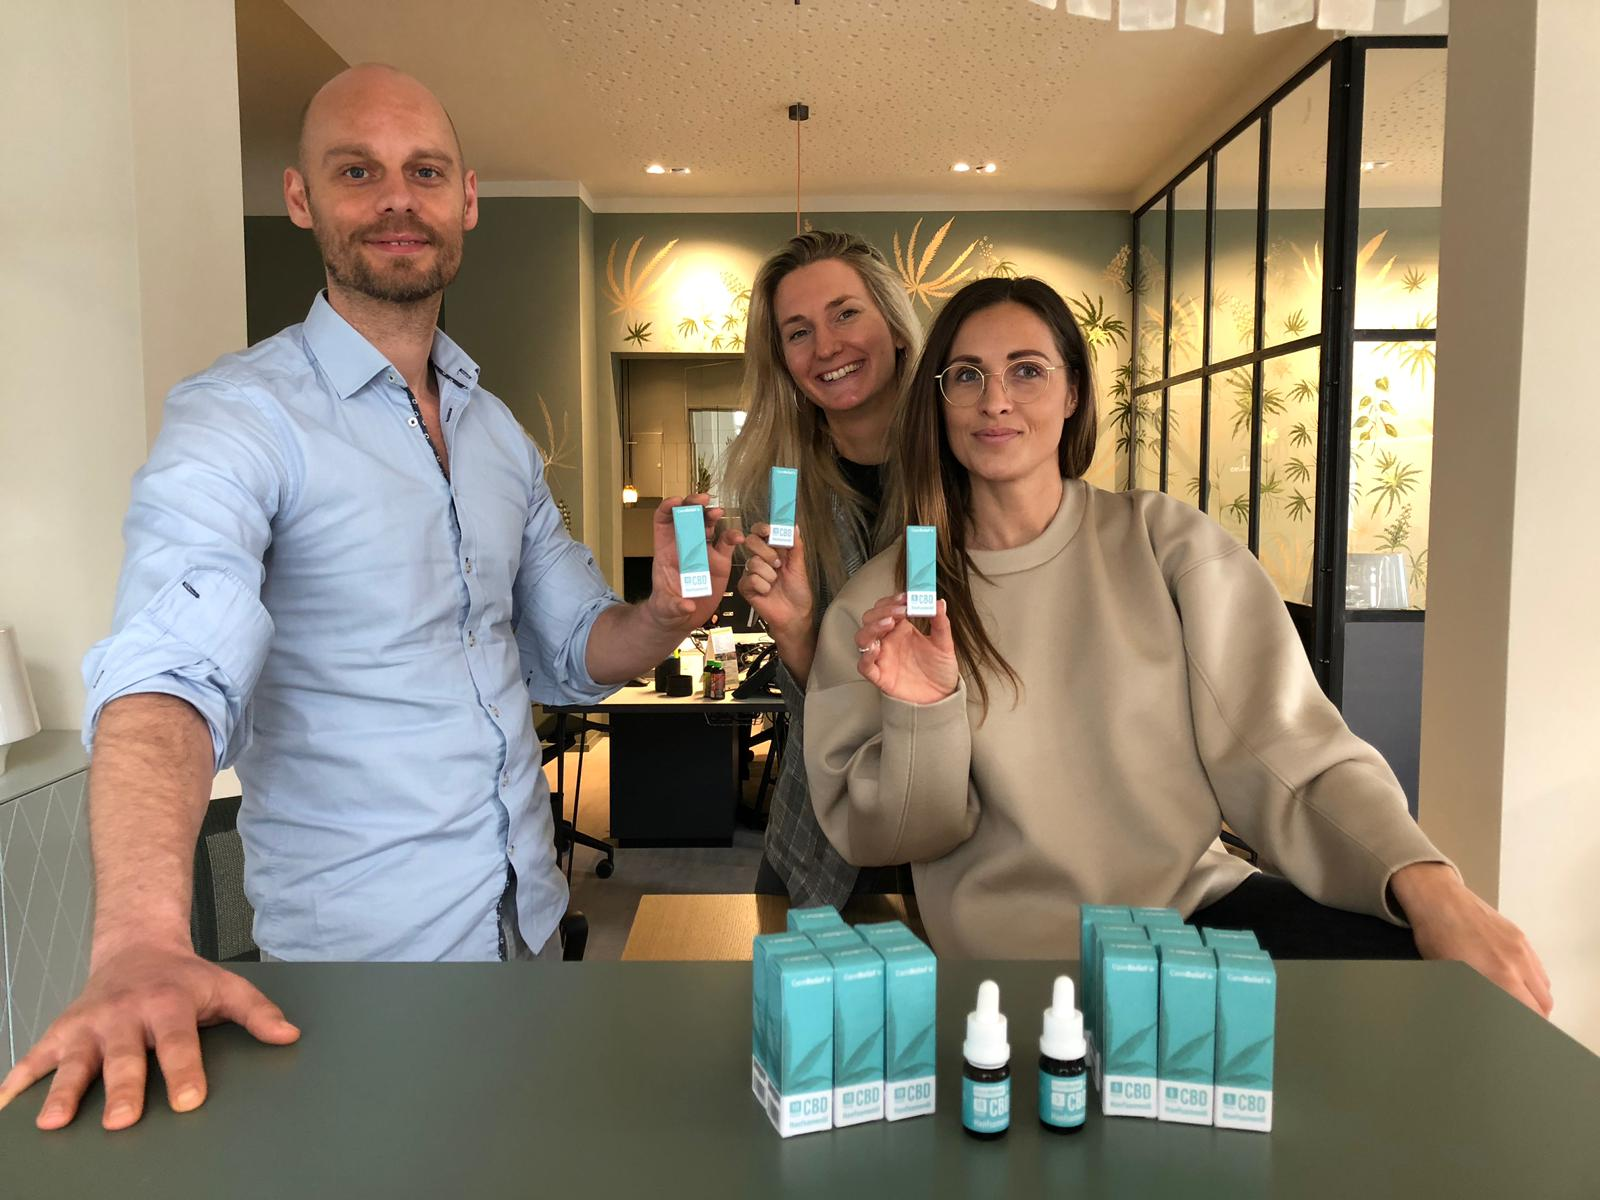 CannRelief is sold in pharmacies across Germany